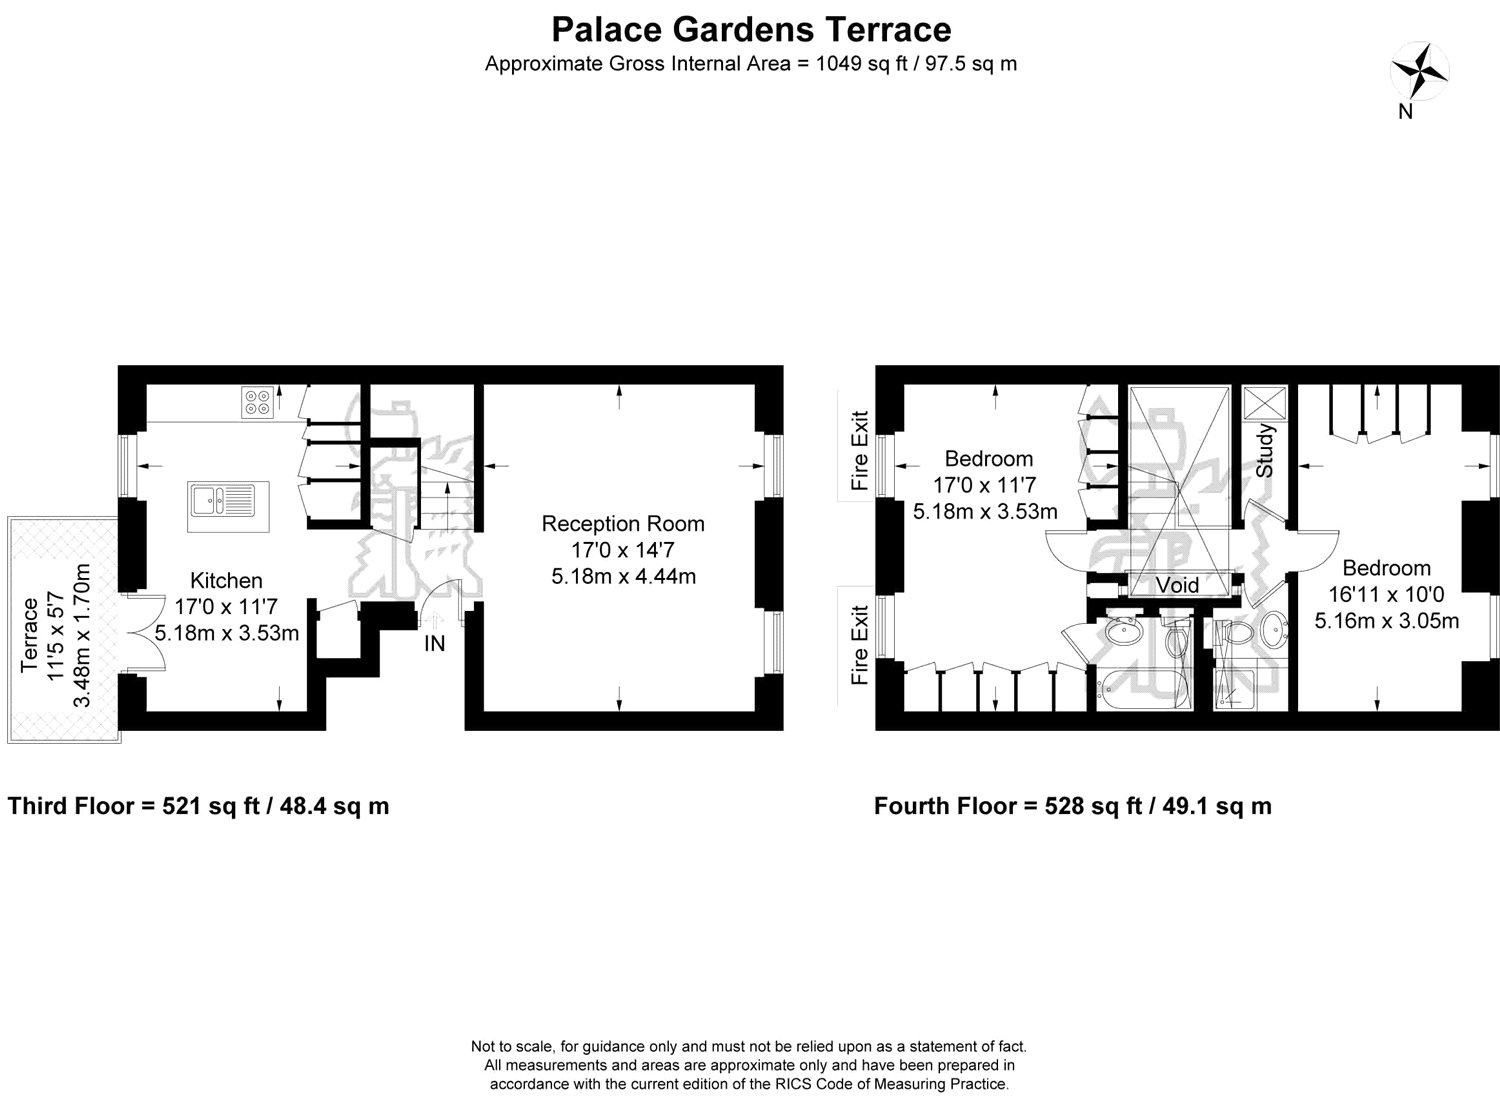 2 Bedroom Maisonette To Rent In Palace Gardens Terrace